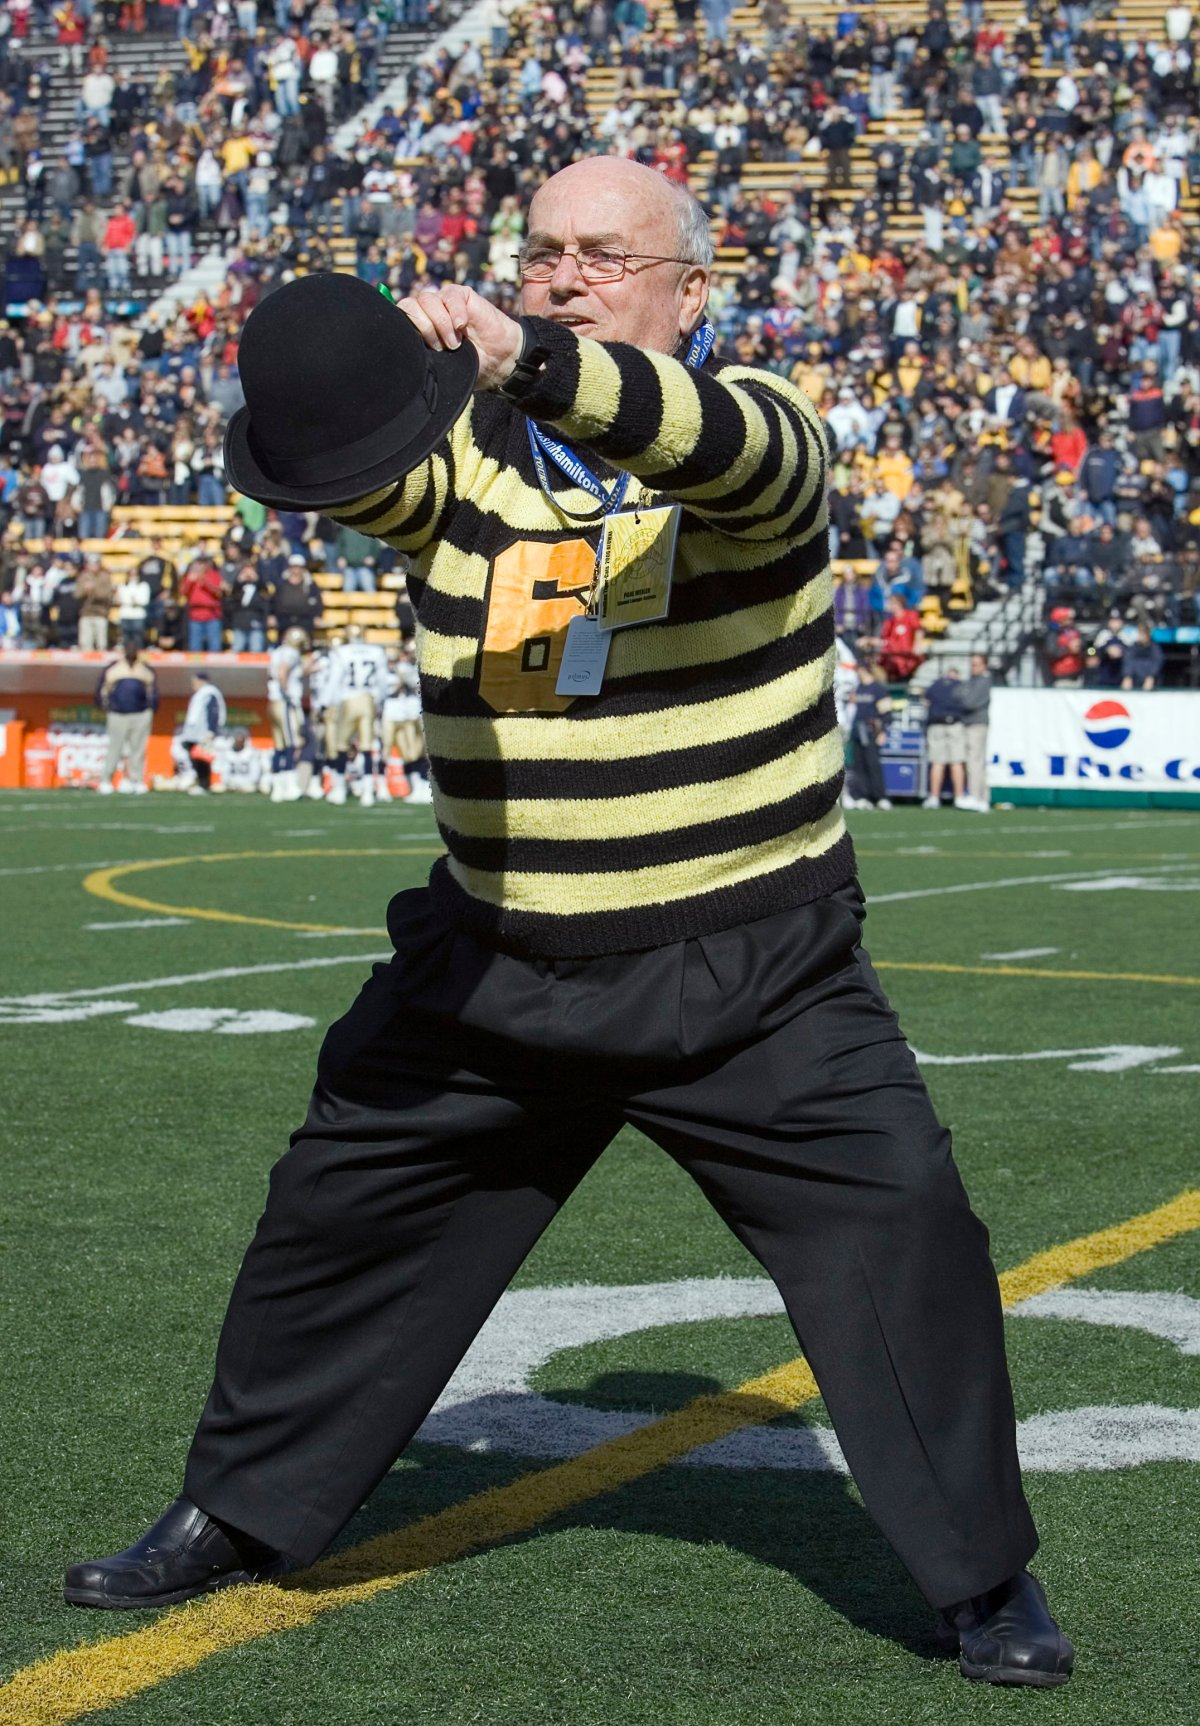 """Paul Weiler leads the famous """"Oskee Wee Wee"""" cheer as Pigskin Pete during CFL action between the Hamilton Tiger-Cats and the Winnipeg Blue Bombers in Hamilton, Ont., on Sunday, Oct. 15, 2006. The game was Weiler's last."""